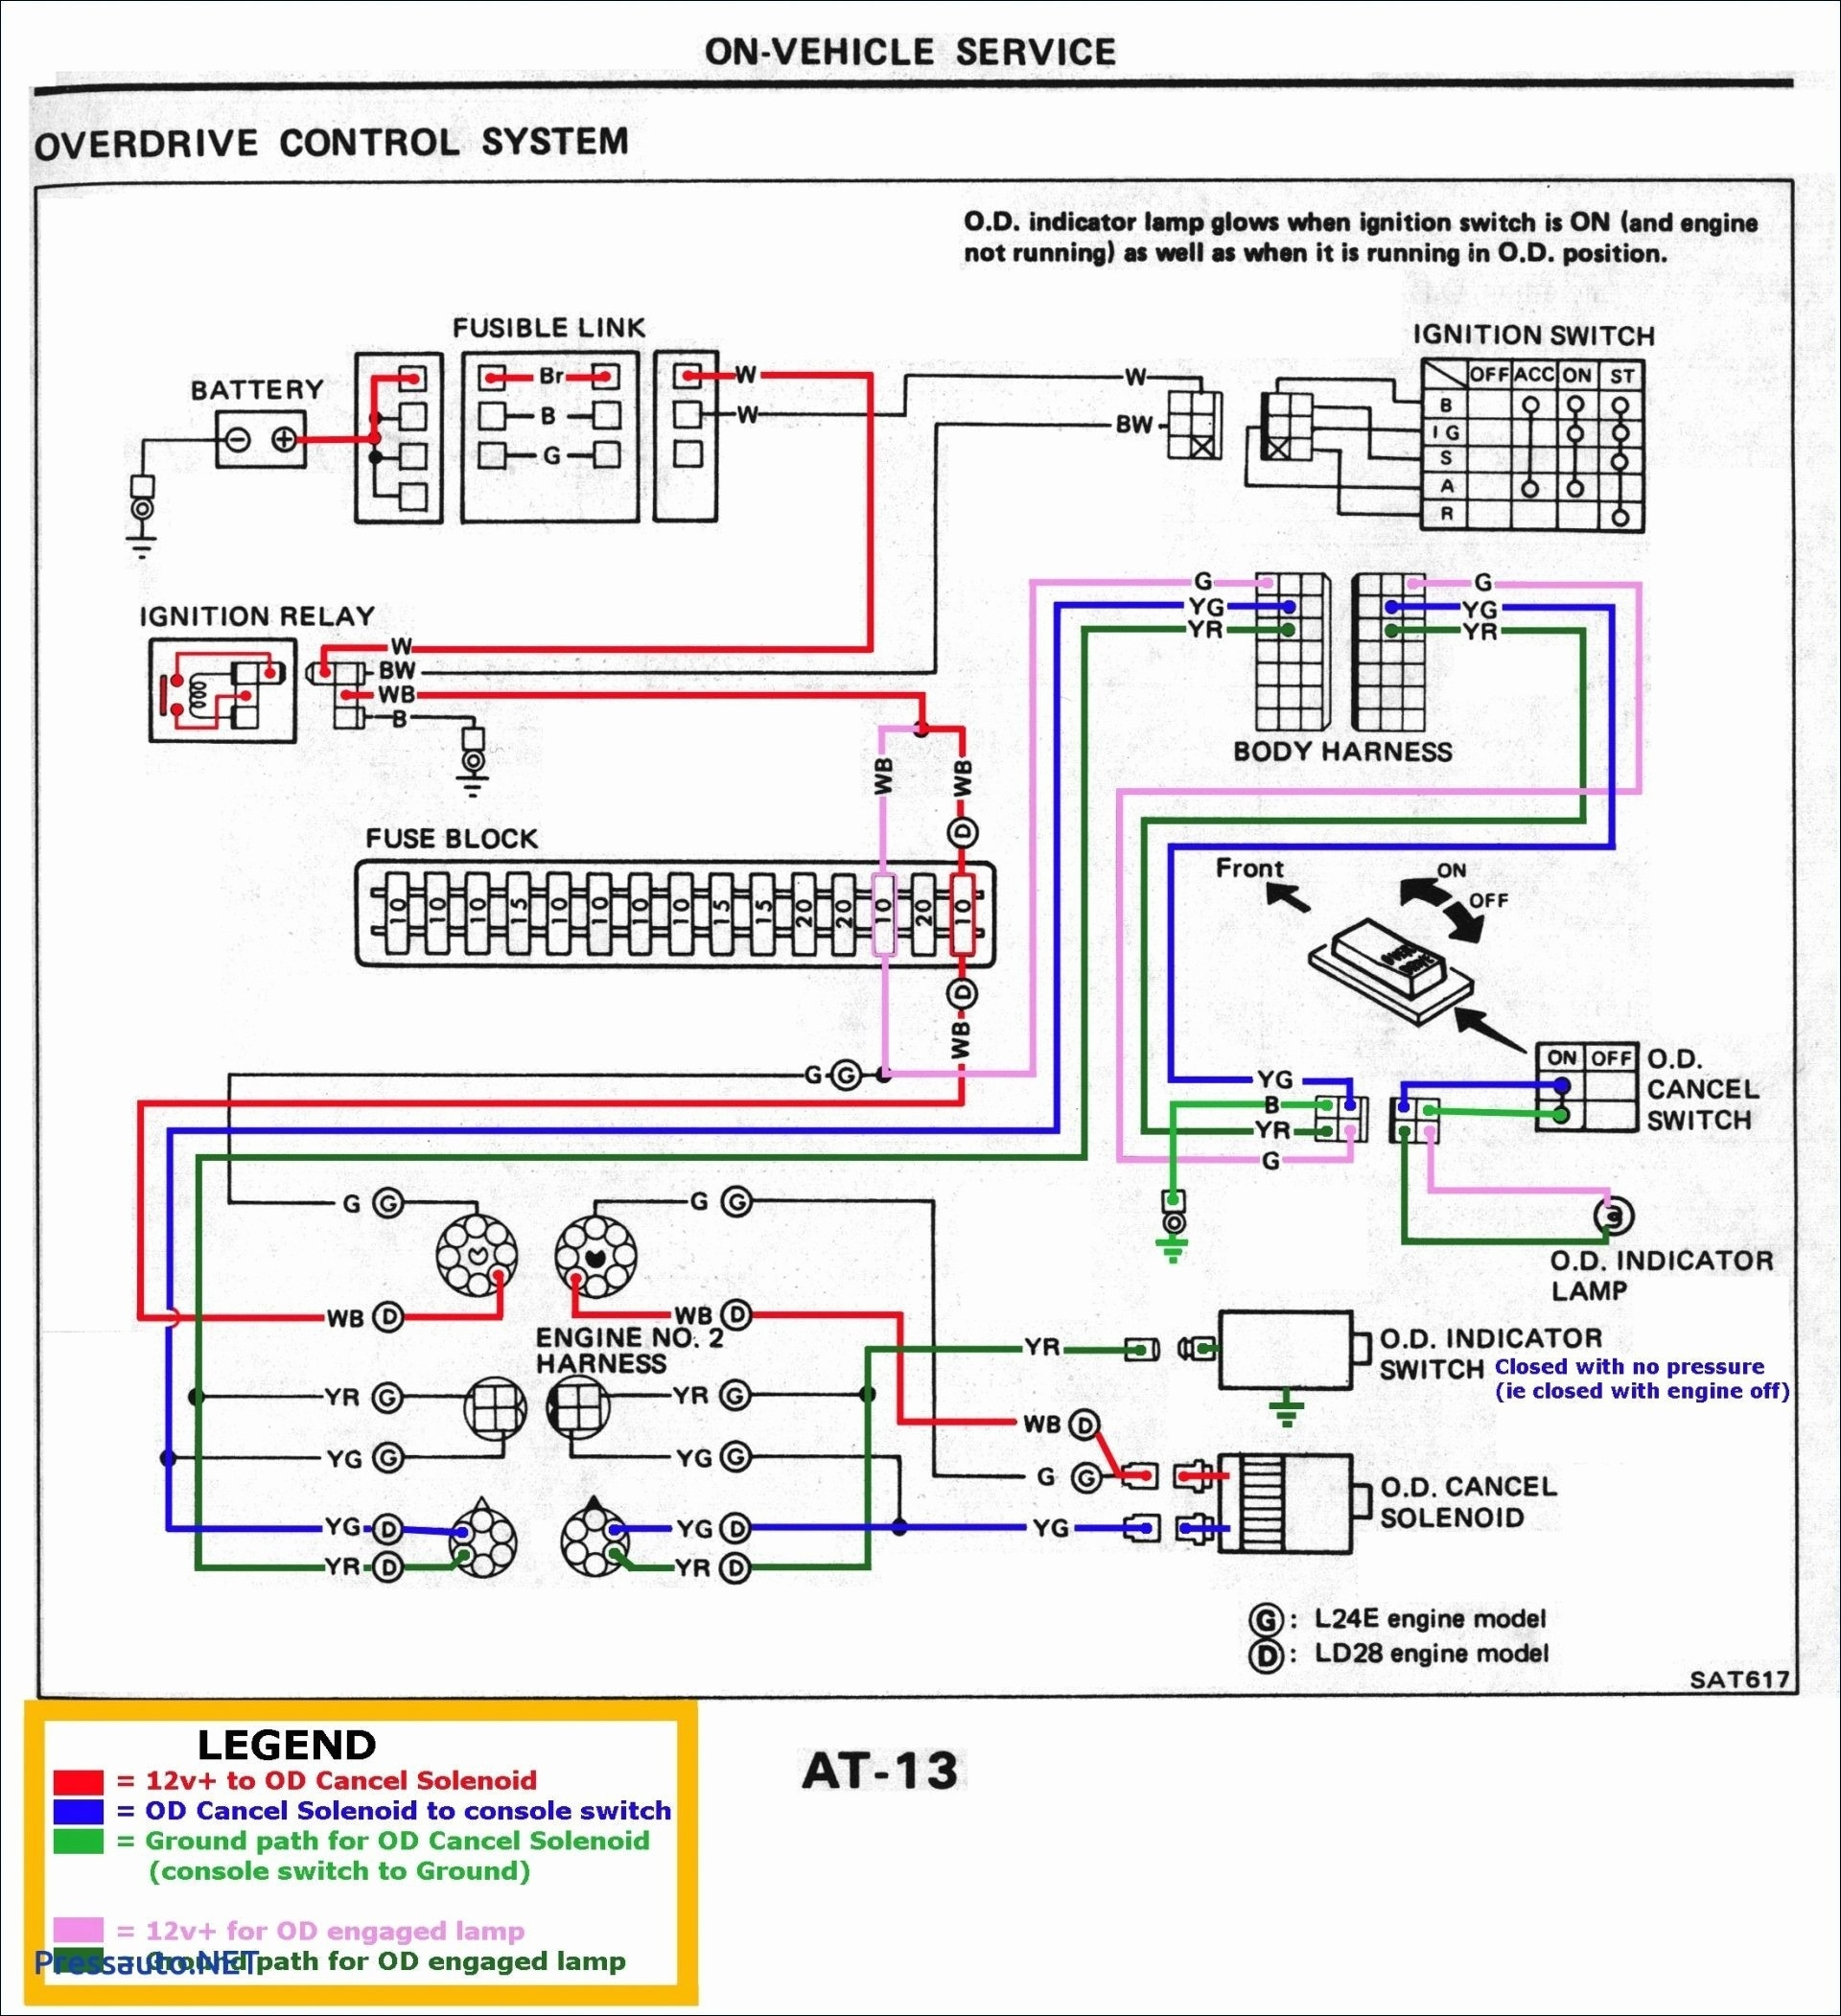 dodge ram ignition switch wiring diagram Collection-2006 Dodge Ram 1500 Trailer Wiring Diagram Valid 2004 Dodge Ram 1500 Ignition Switch Wiring Diagram 18-d